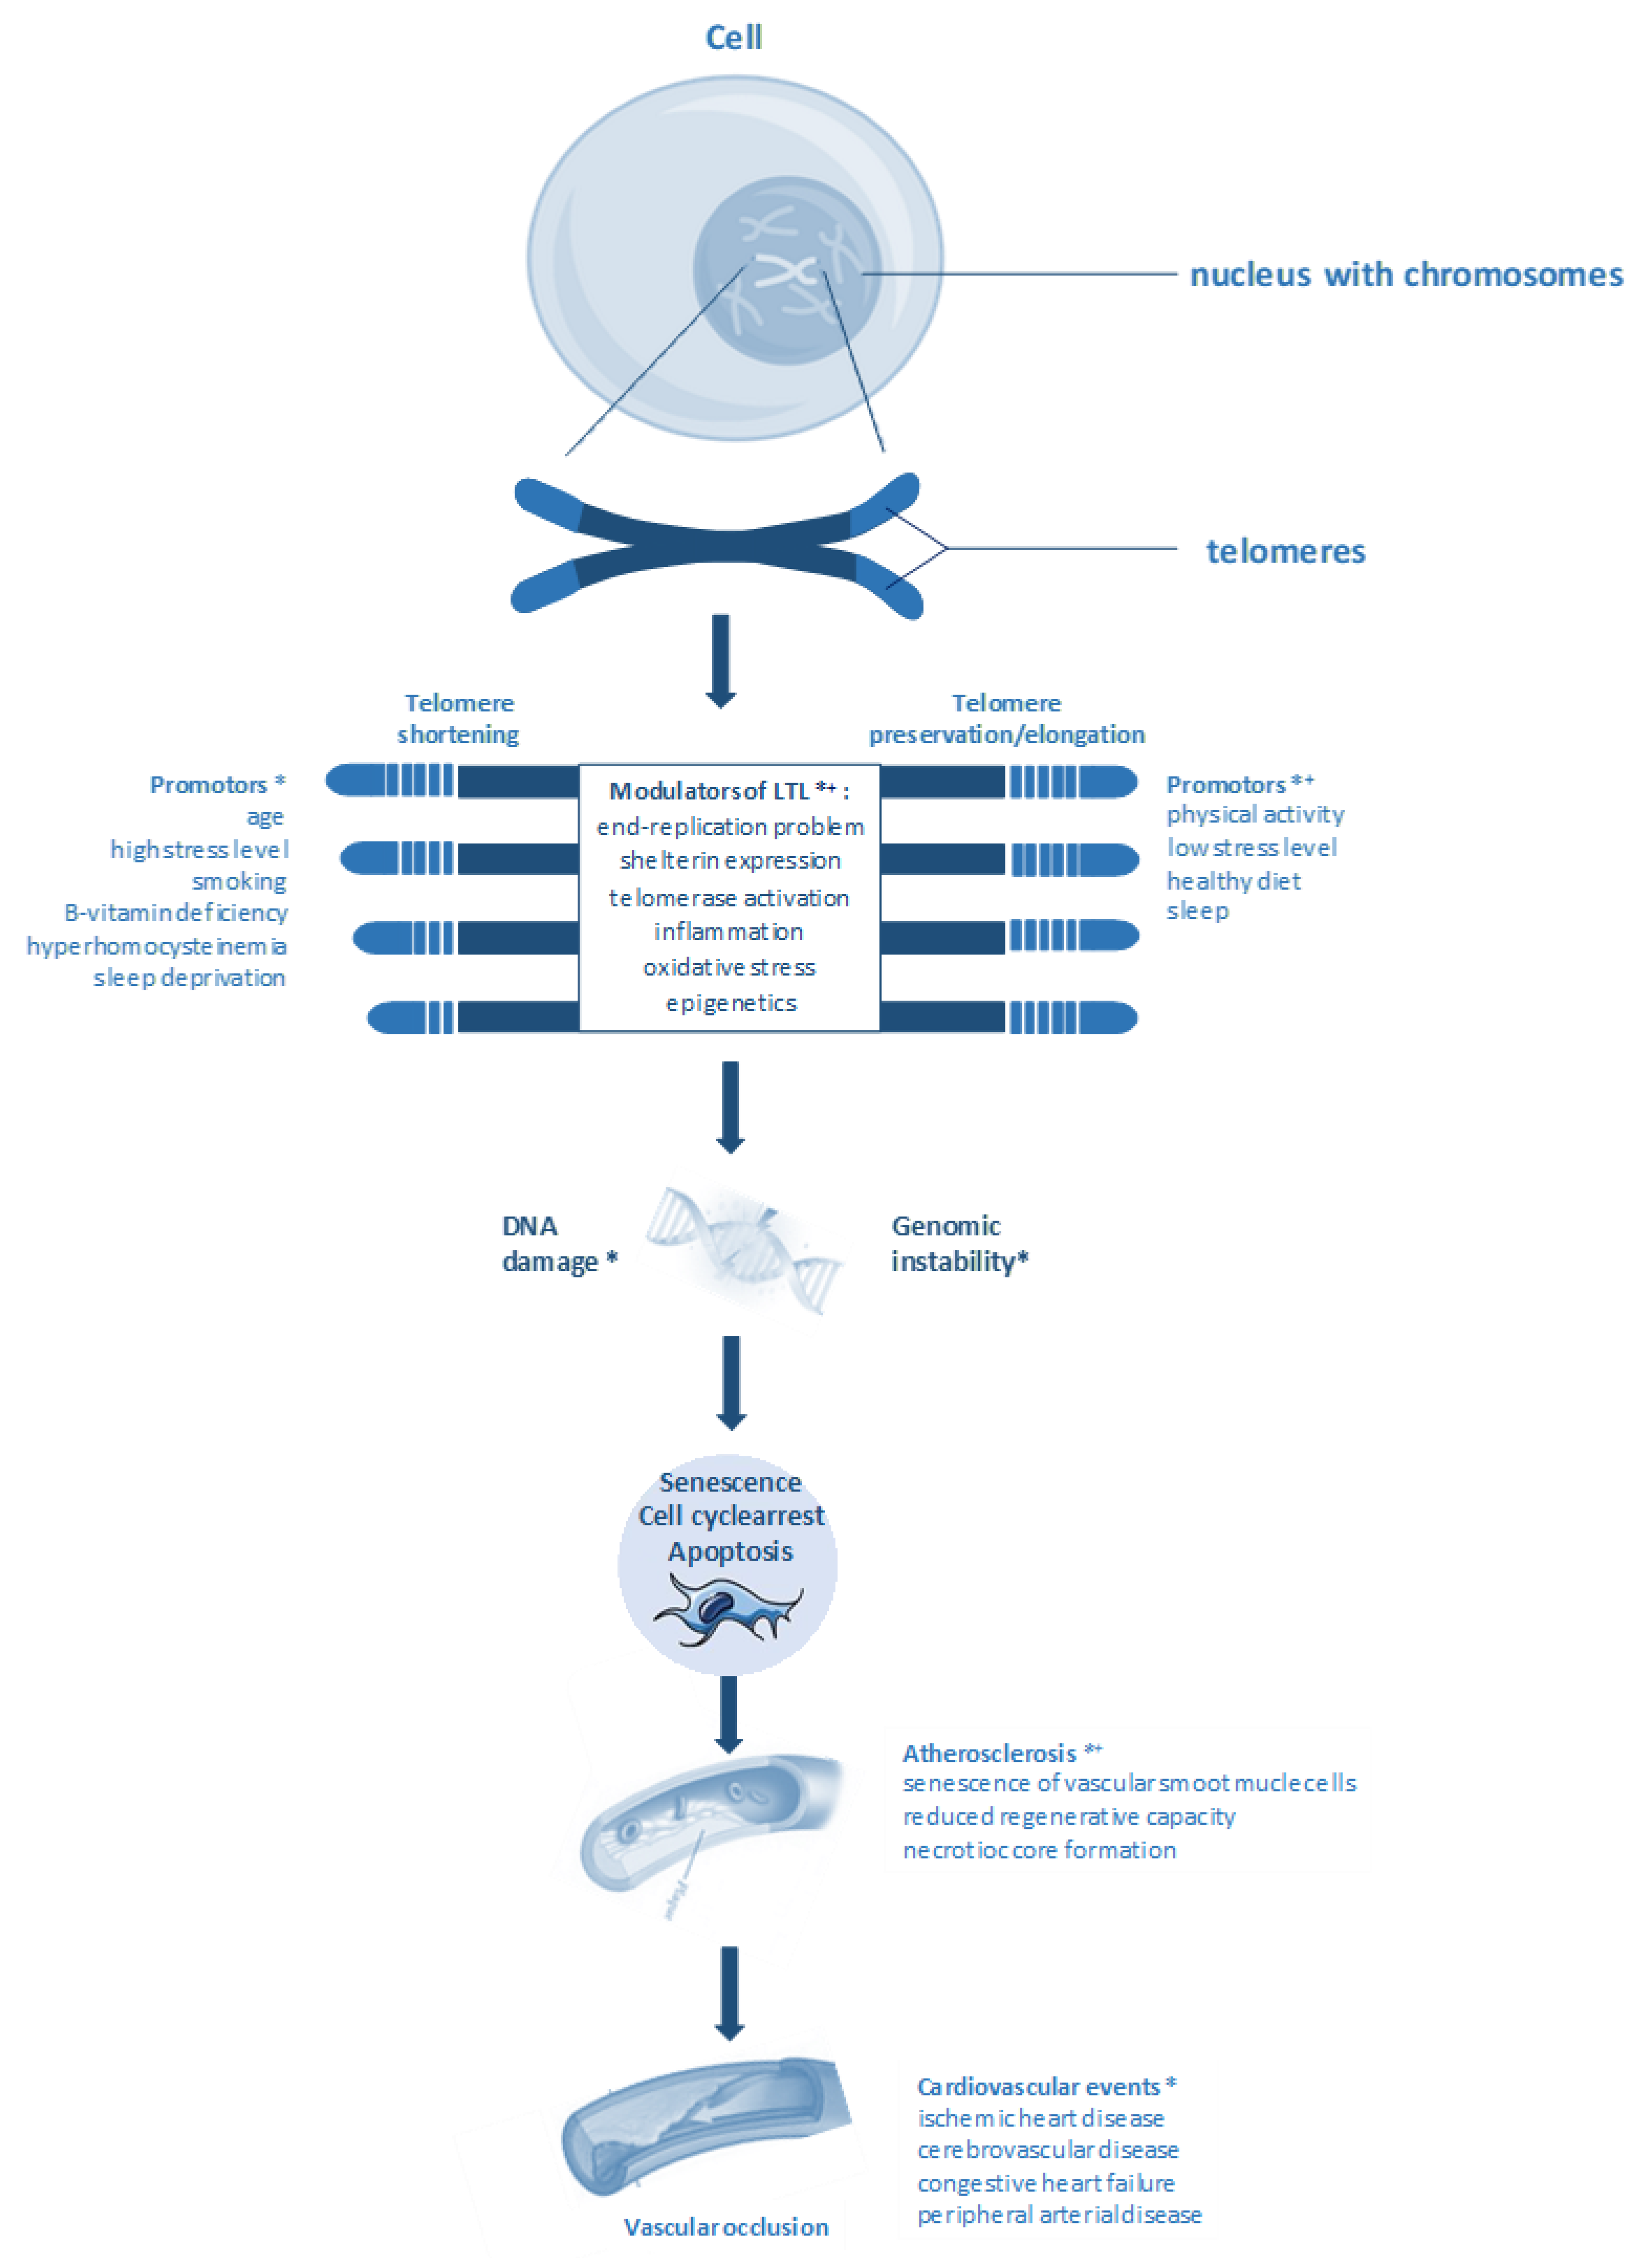 Jcdd Free Full Text The Importance Of Telomere Shortening For Atherosclerosis And Mortality Html